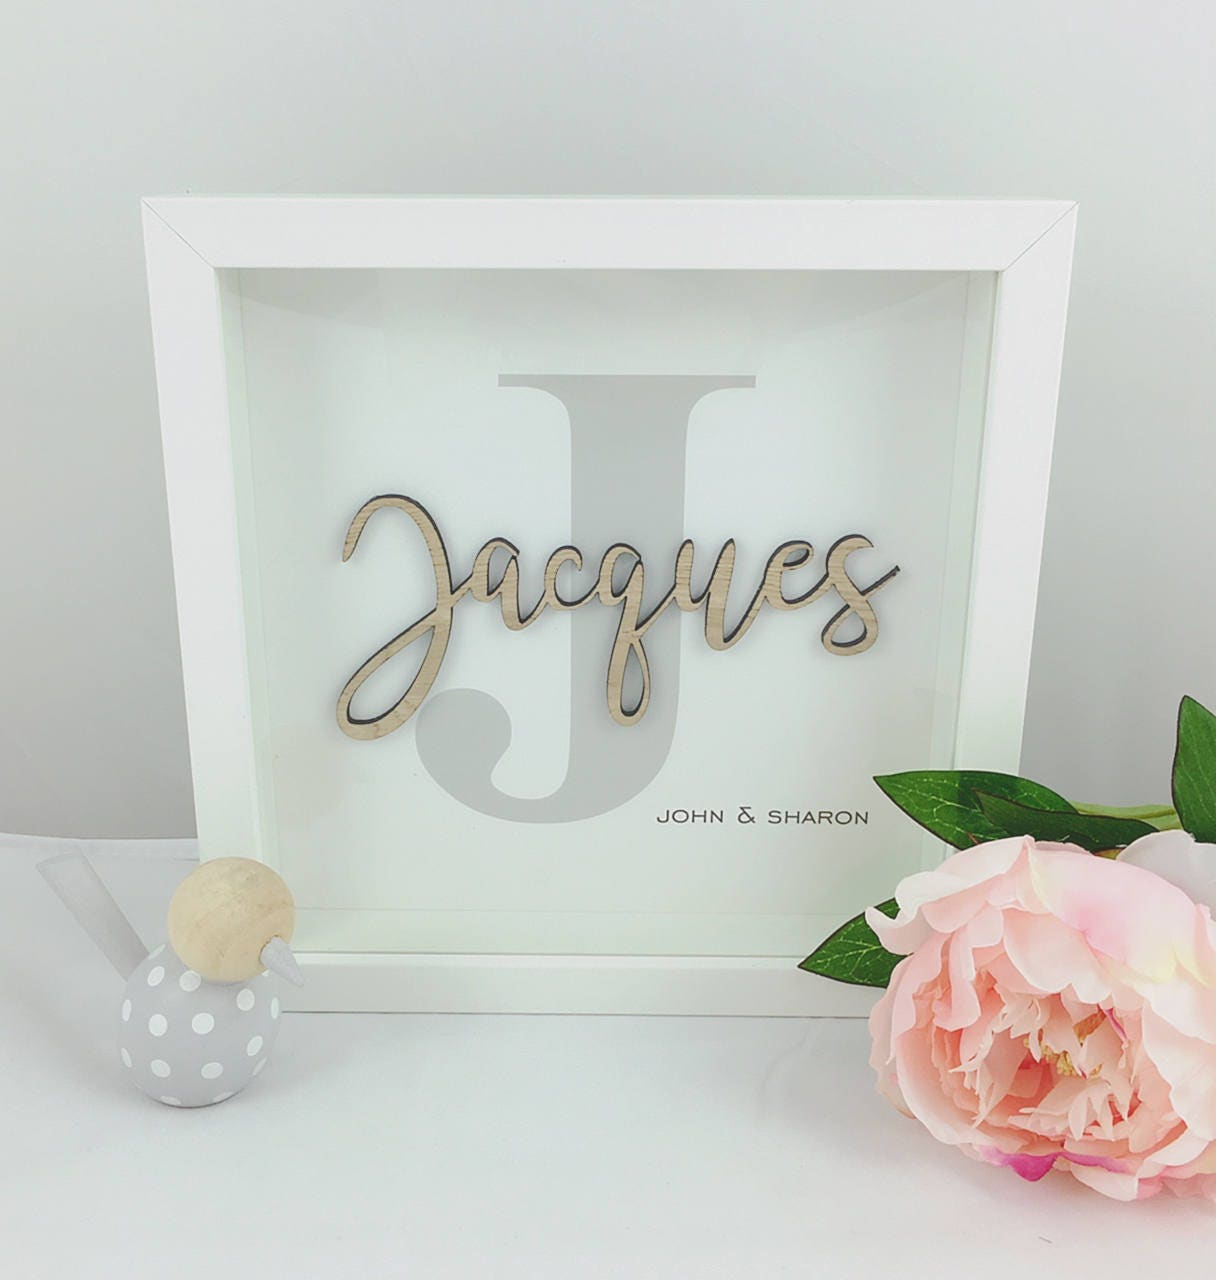 personalised wedding frame personalised wedding gift mr and mrs frame surname frame - Mr And Mrs Frame